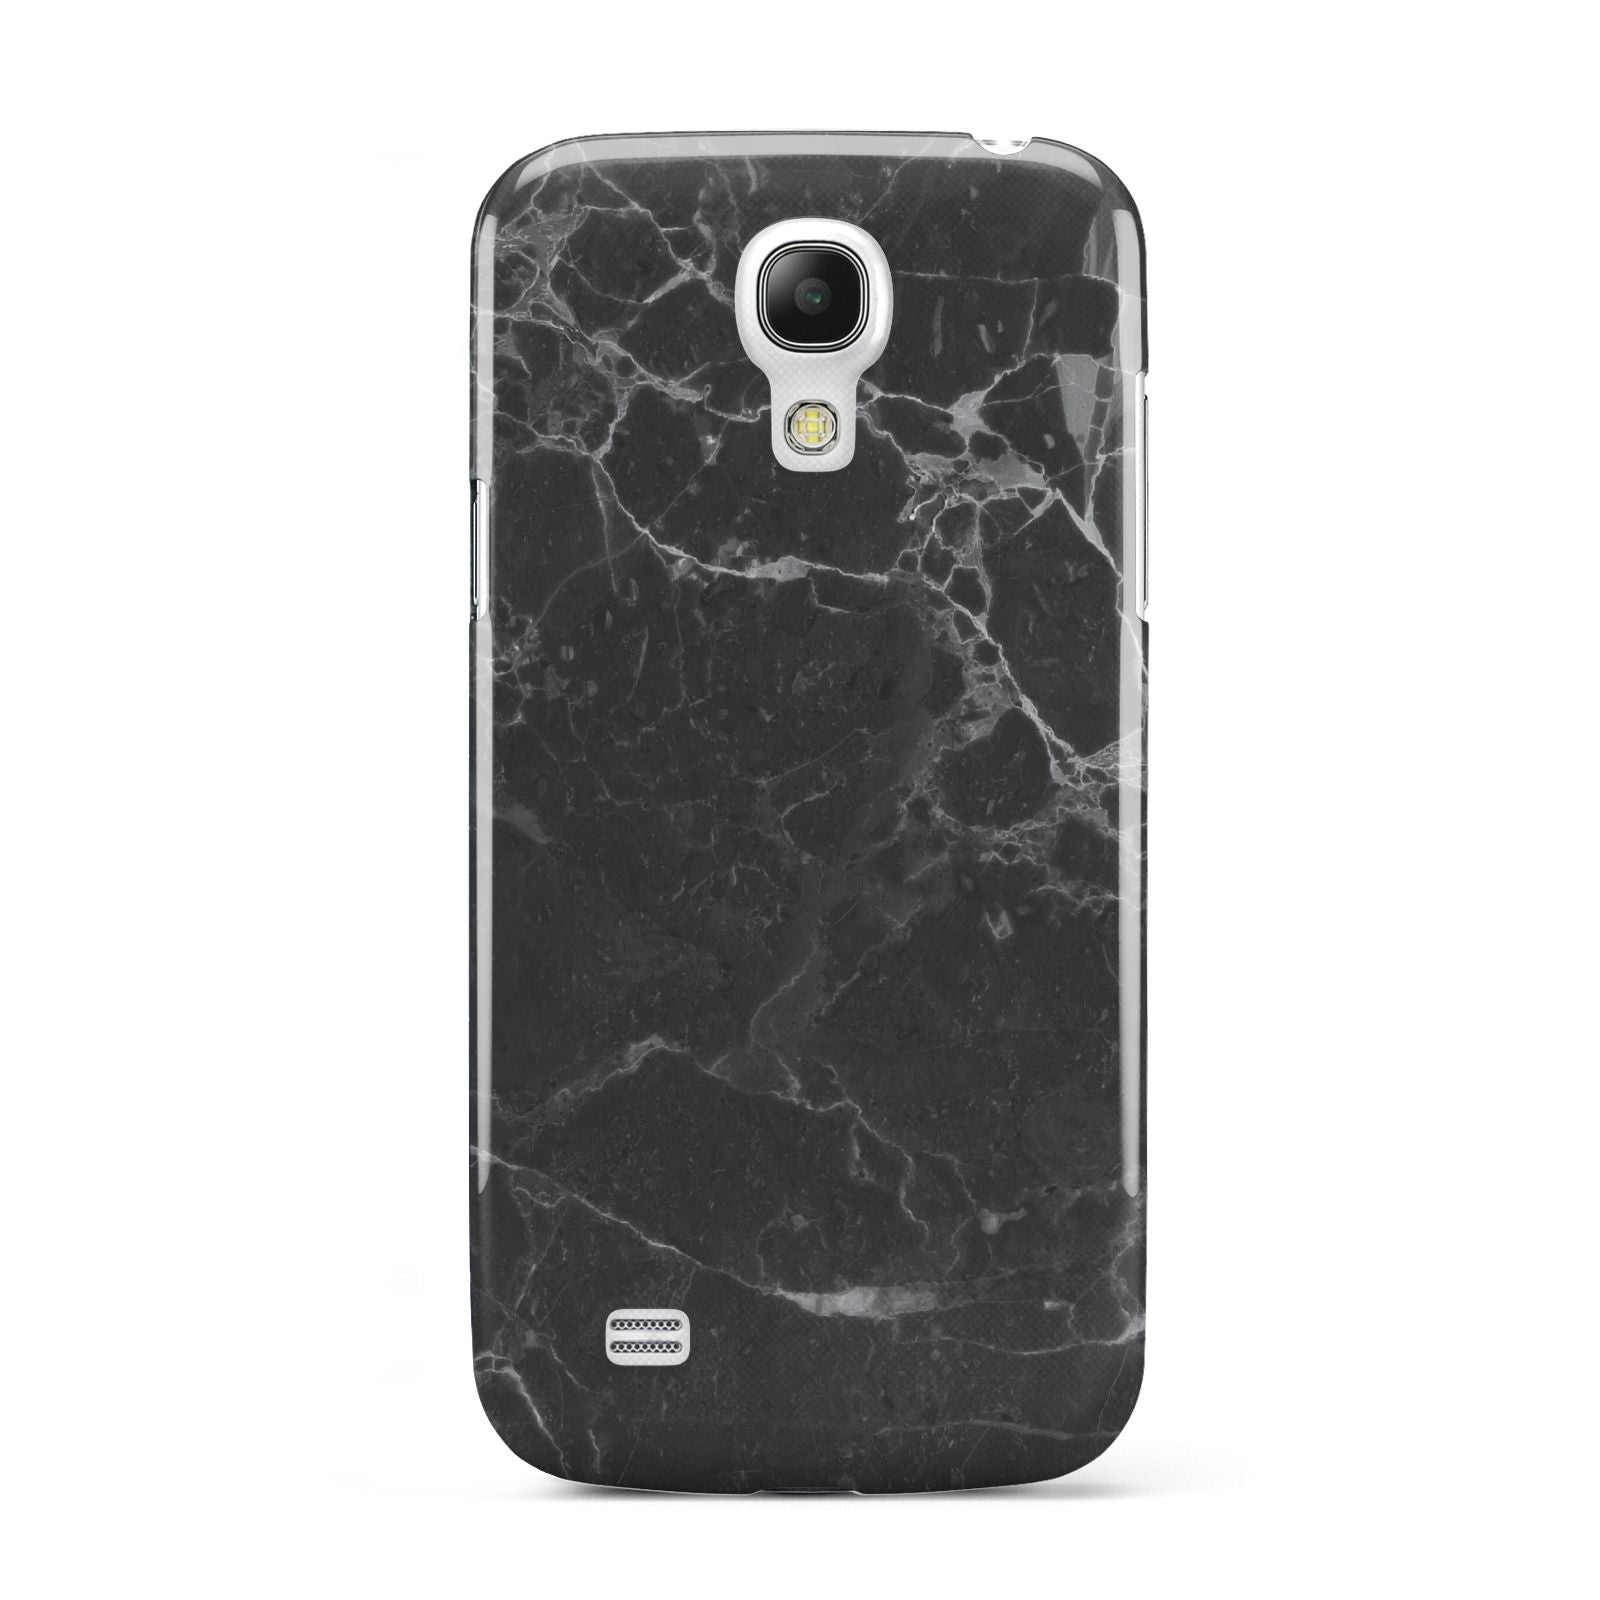 Faux Marble Effect Black Samsung Galaxy S4 Mini Case